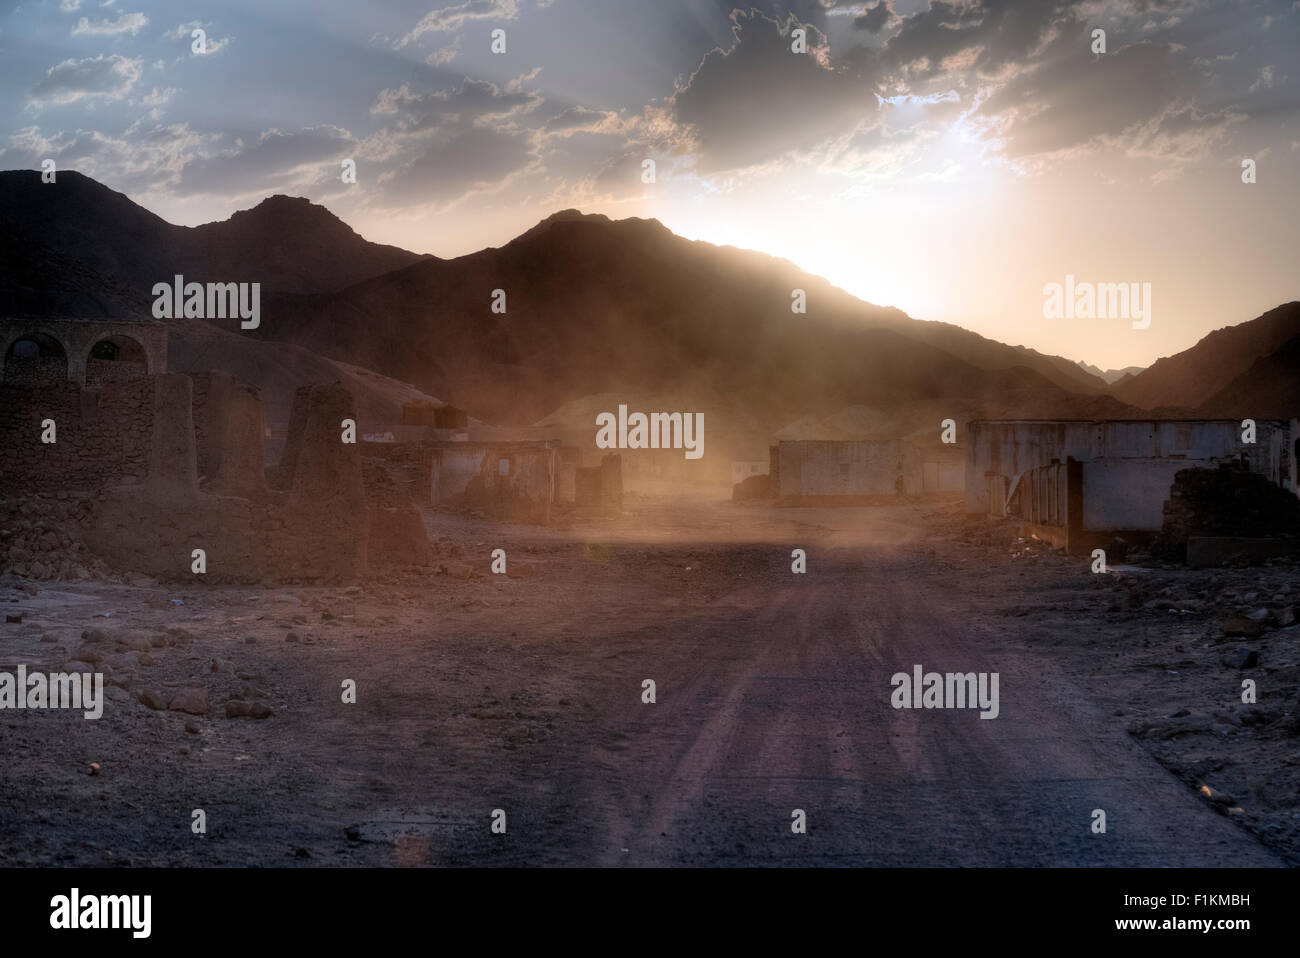 Umm el Howeitat, ghost town, Safaga, Egypt, Africa - Stock Image